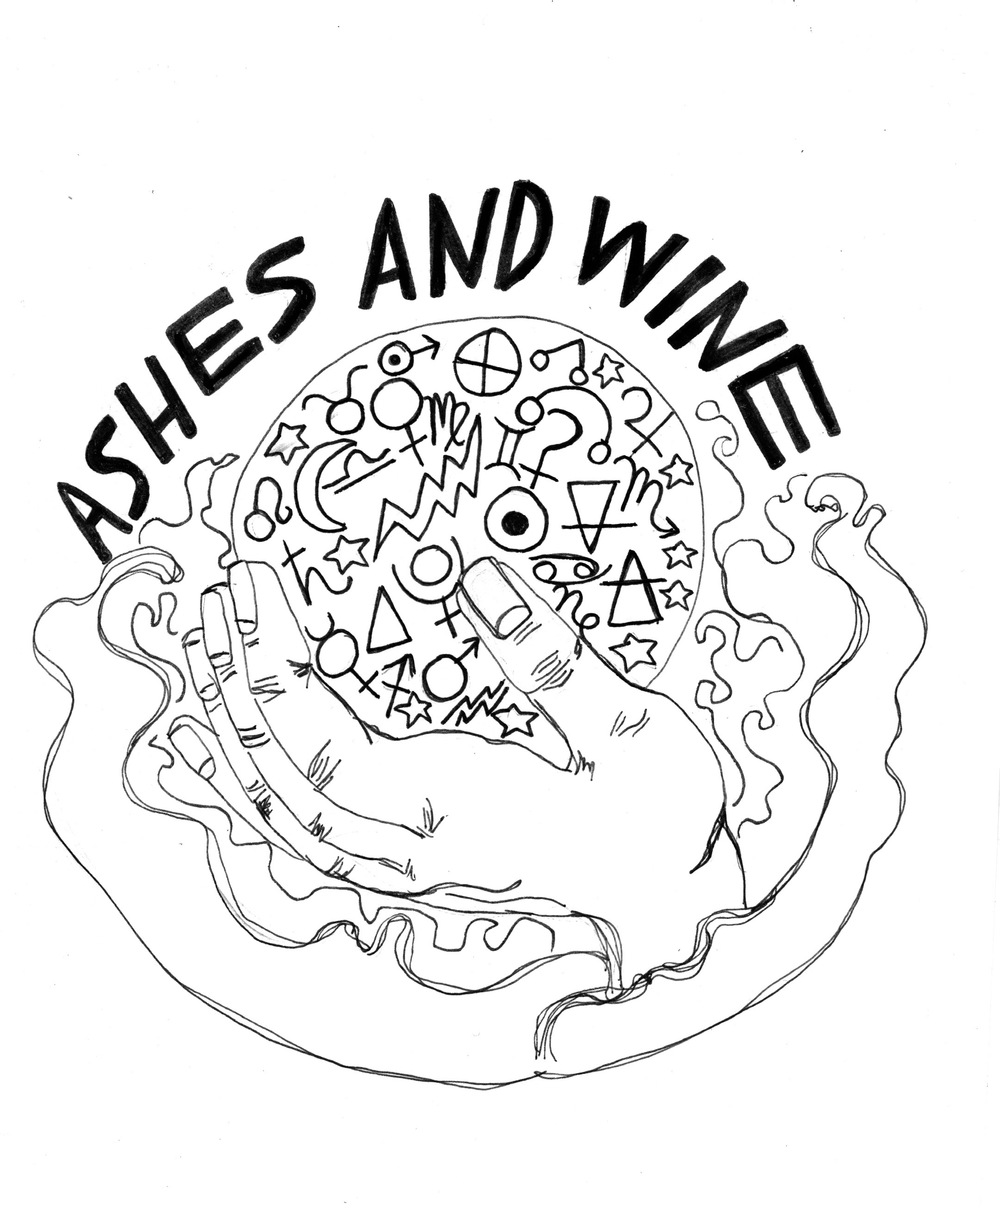 Ahes and Wine Full copy.jpg